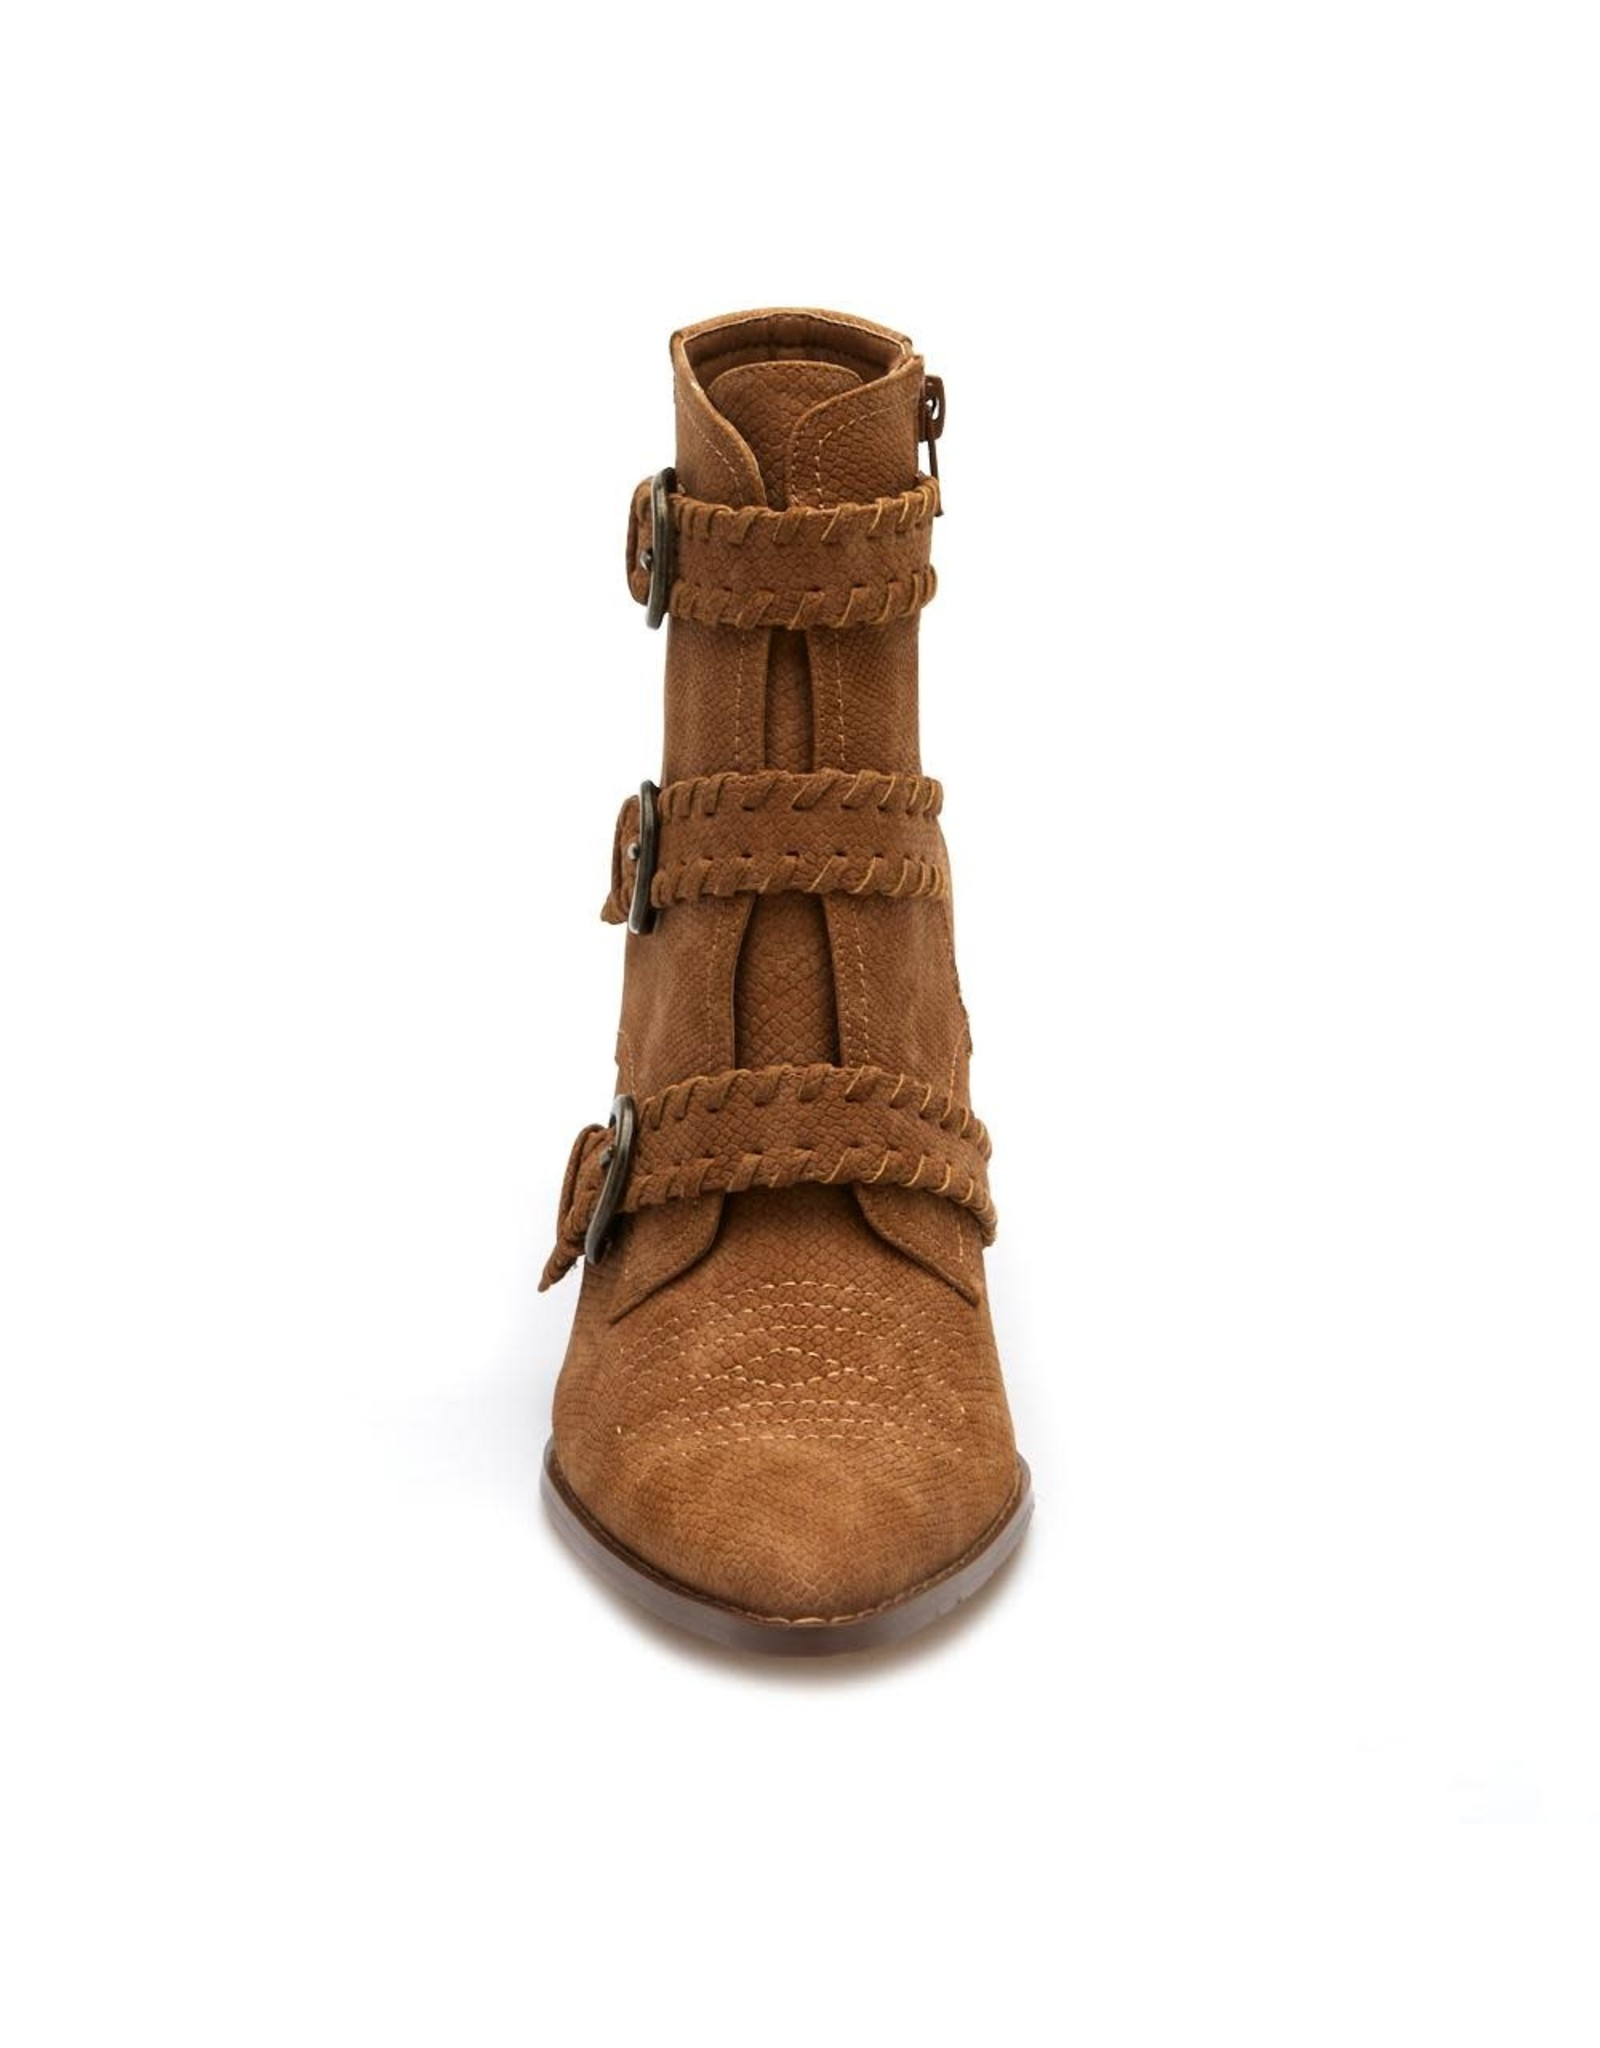 Matisse Charmer Buckle Boots in Tan